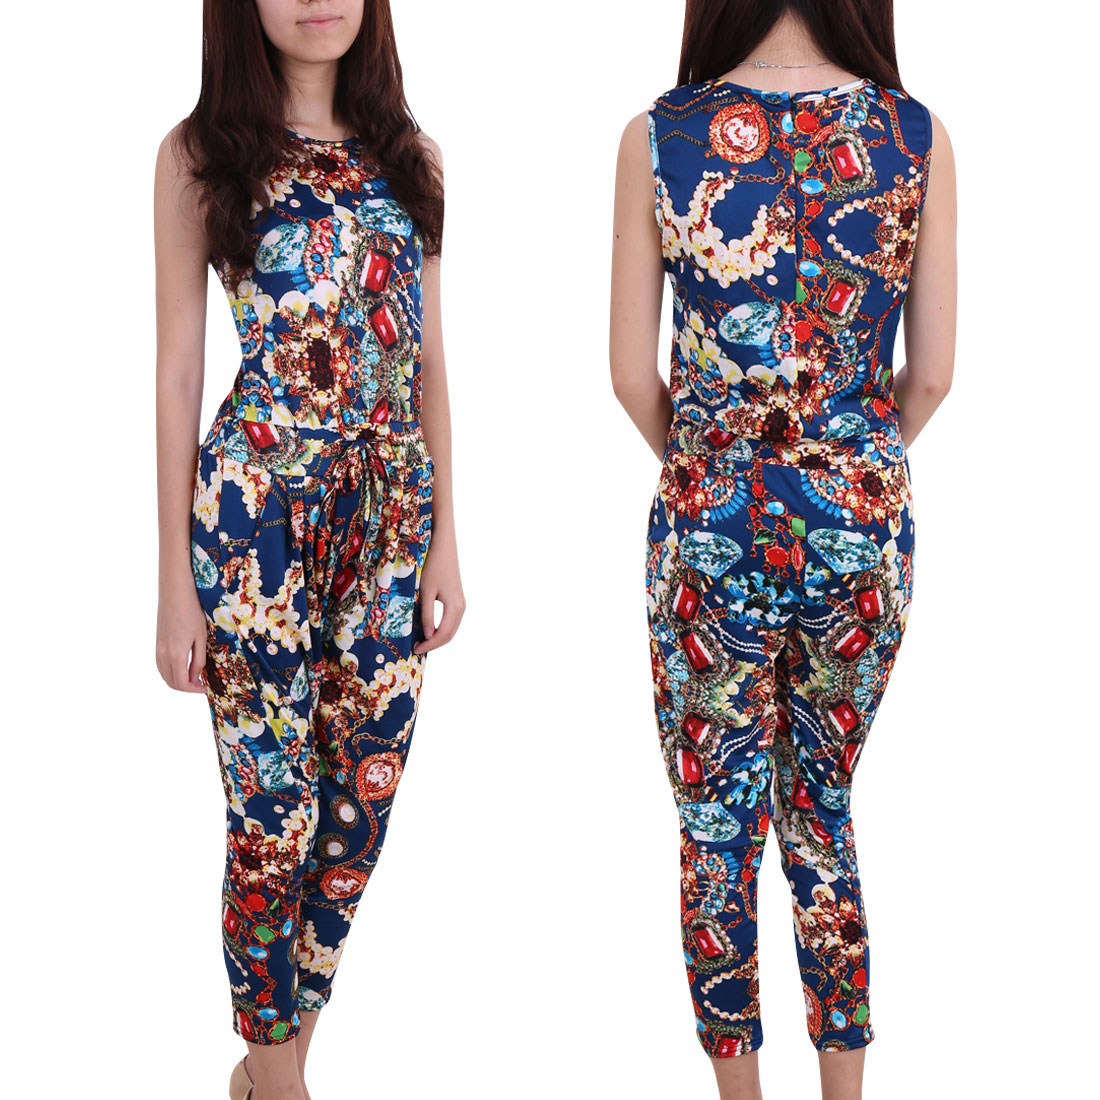 Women Novelty Pattern Round Neck Sleeveless Style Jumpsuit Navy Blue S